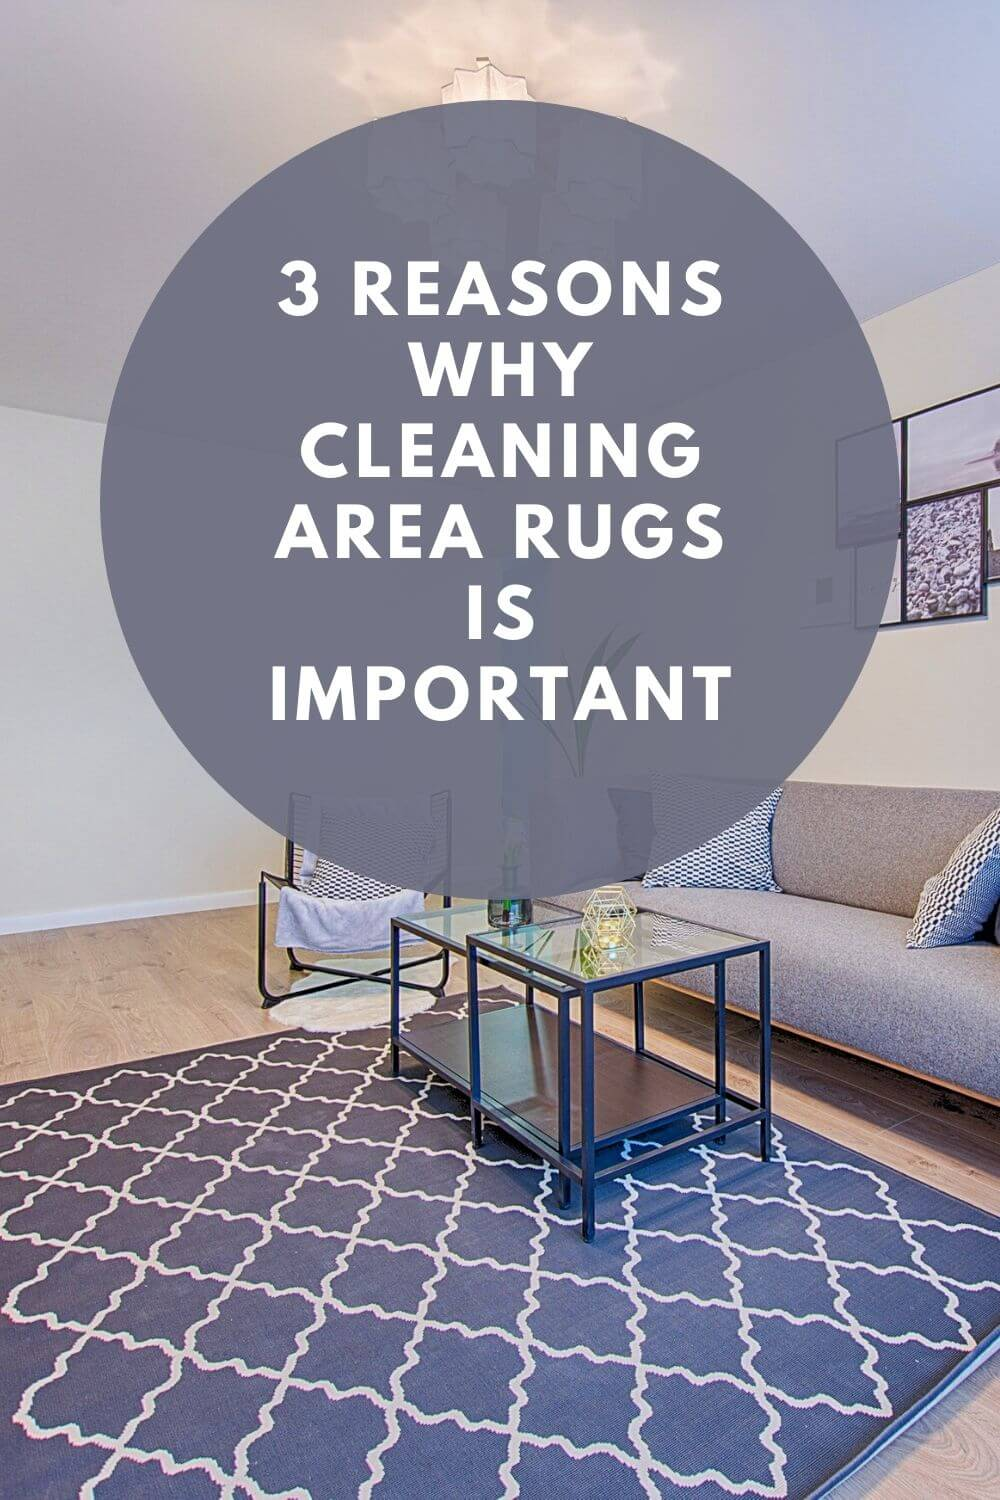 la rug cleaning